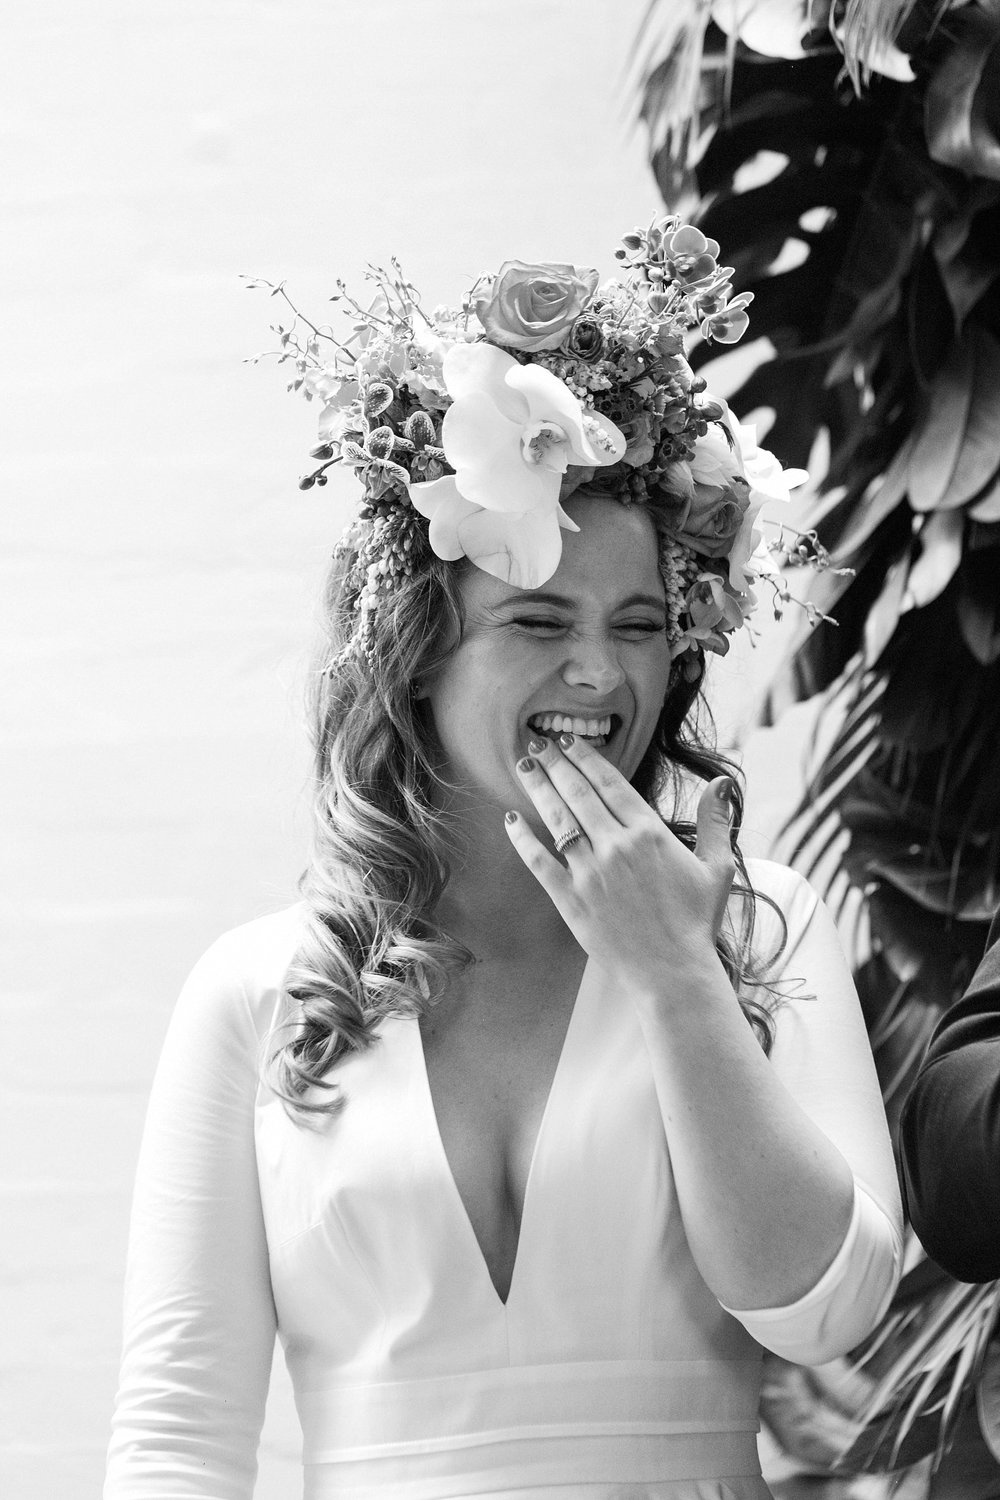 melbourne_wedding_photography_0002-min.jpg